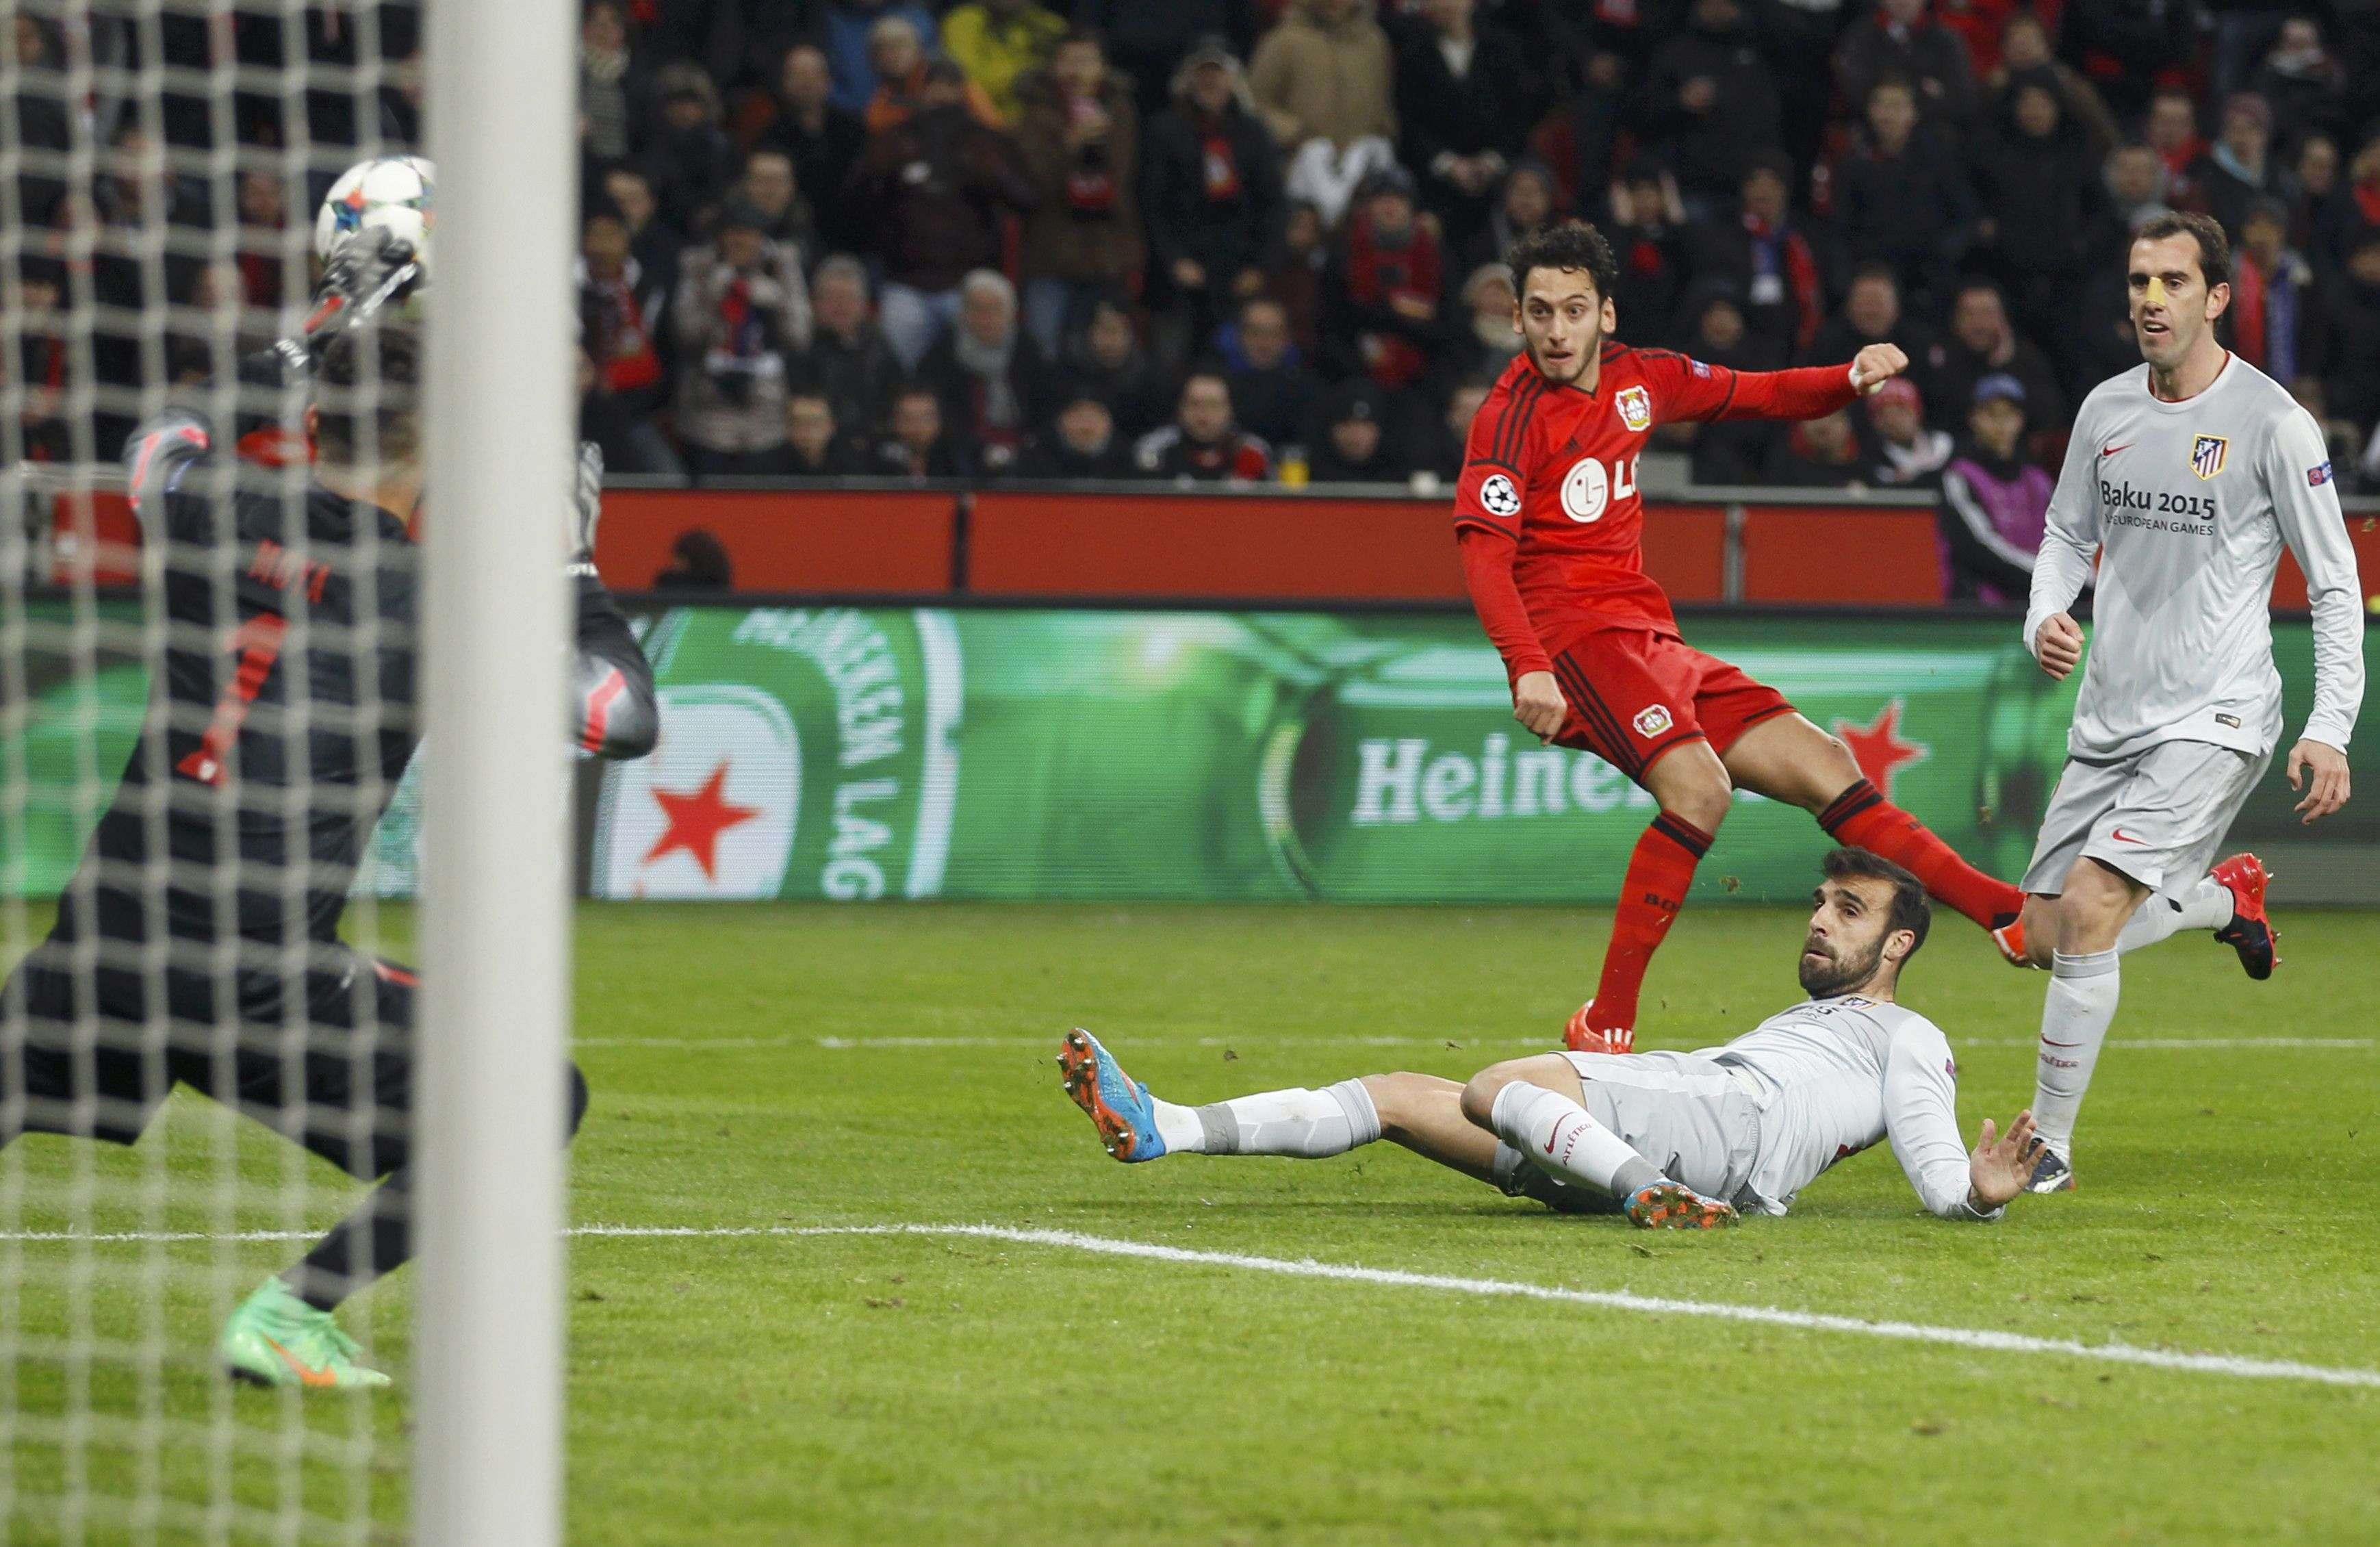 Bayer Leverkusen's Hakan Calhanoglu (C) scores a goal past Atletico Madrid's goalkeeper Miguel Angel Moya (L) during their Champions League round of 16, first leg soccer match in Leverkusen February 25, 2015. REUTERS/Ina Fassbender (GERMANY - Tags: SPORT SOCCER) Foto: INA FASSBENDER/REUTERS